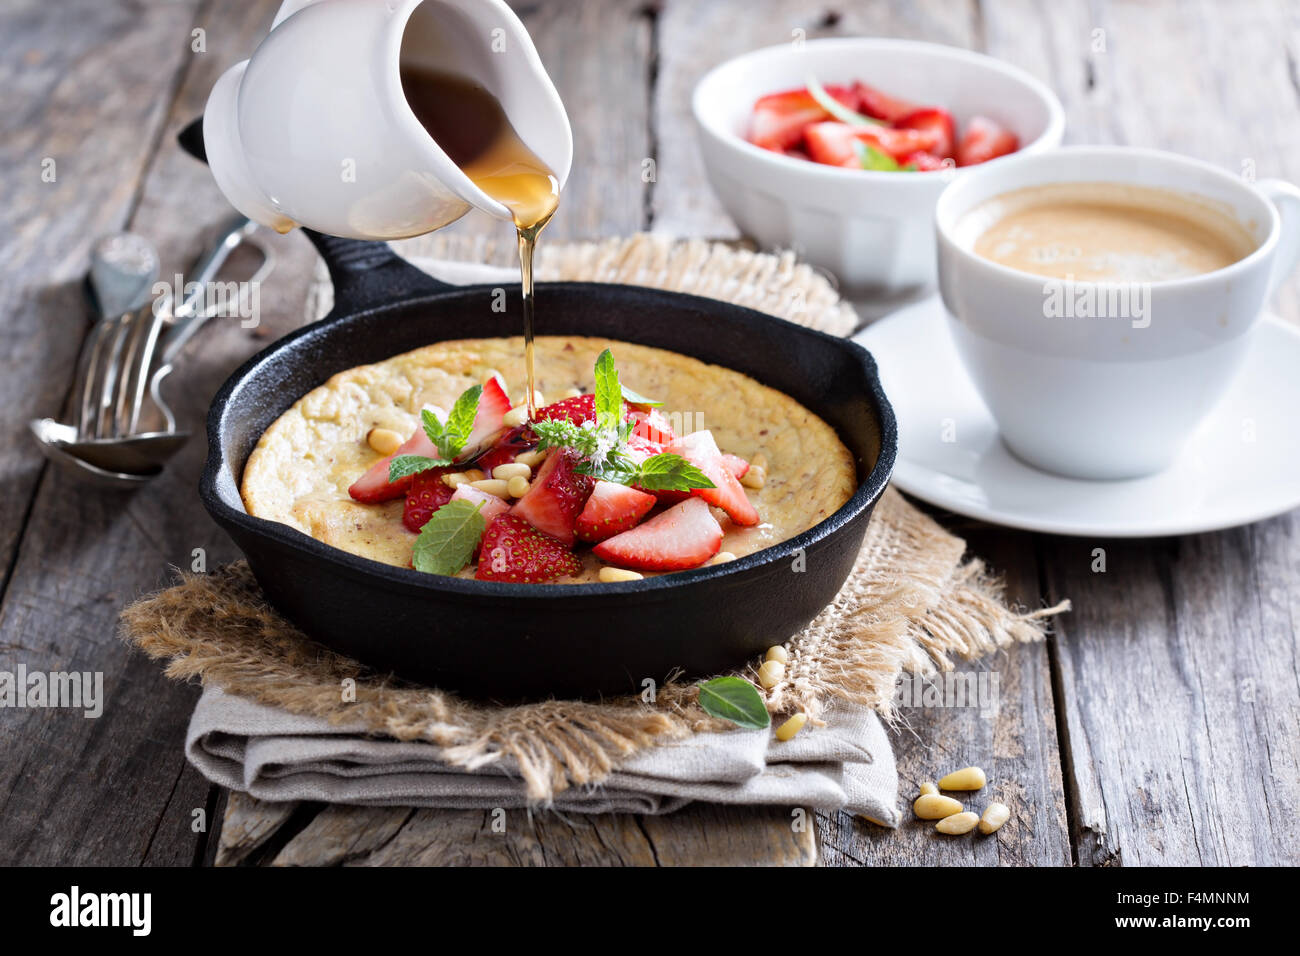 Baked pancake in cast iron pan with fresh strawberries and pine nuts - Stock Image